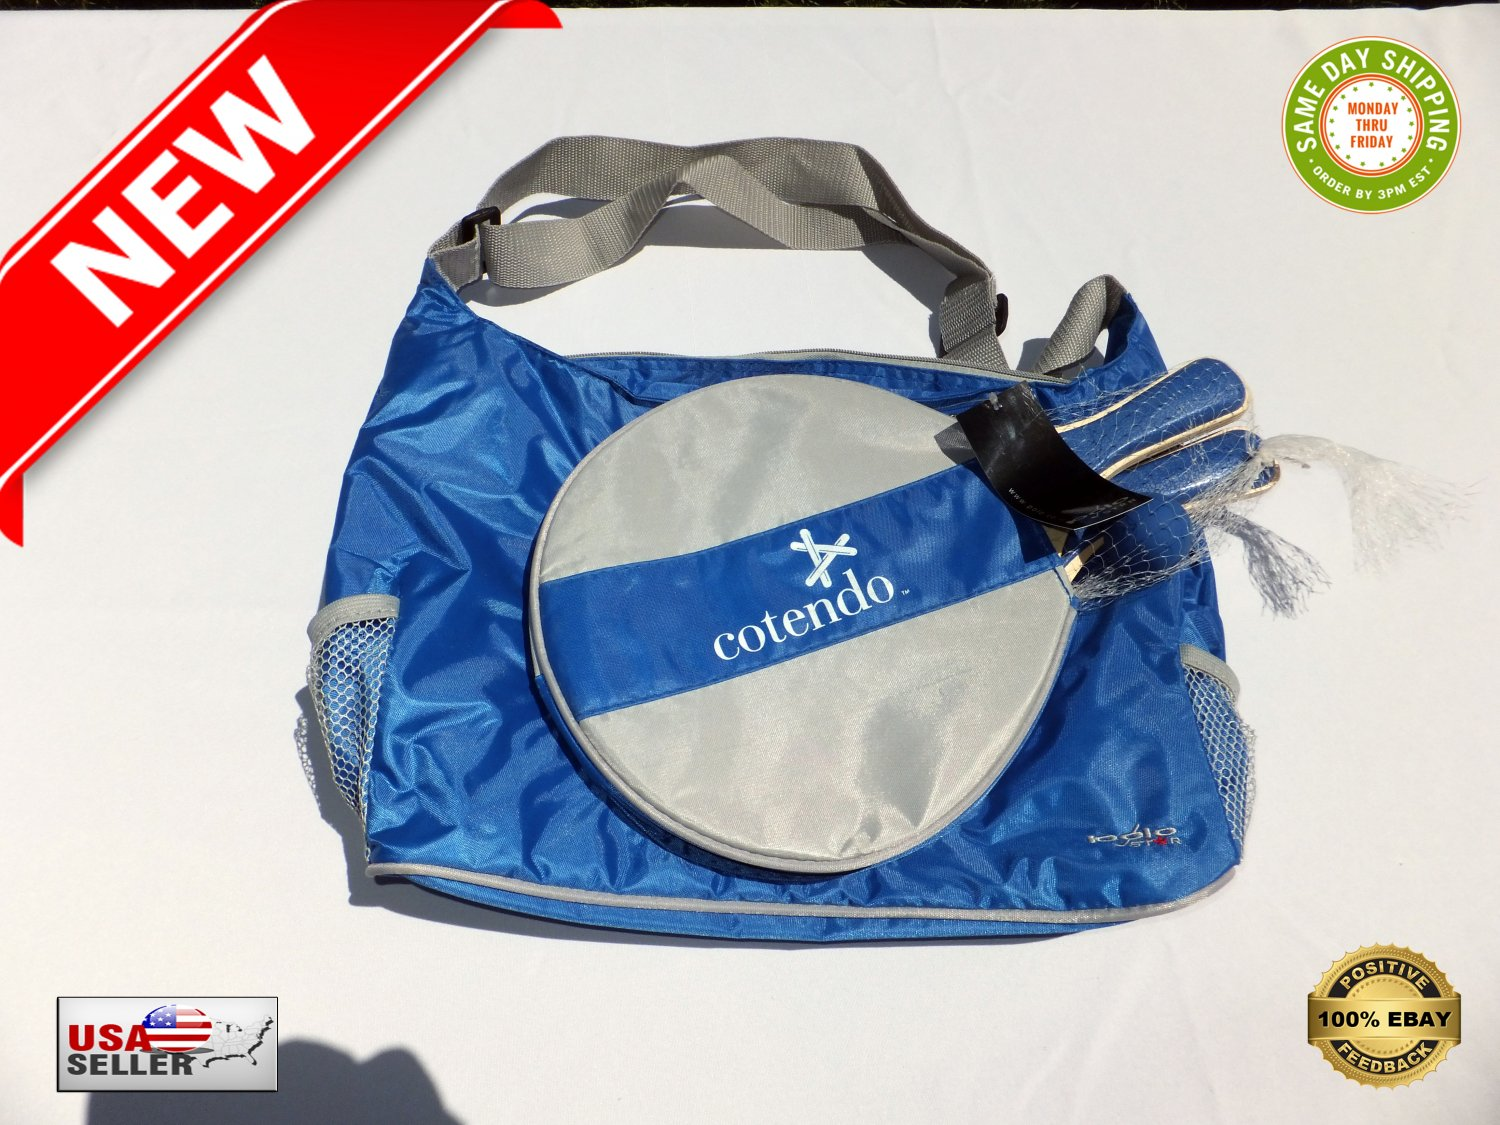 � Polo Star AP786A Outdoor / Camping / Beach Cooler Bag With Ping-Pong Gaming Set �